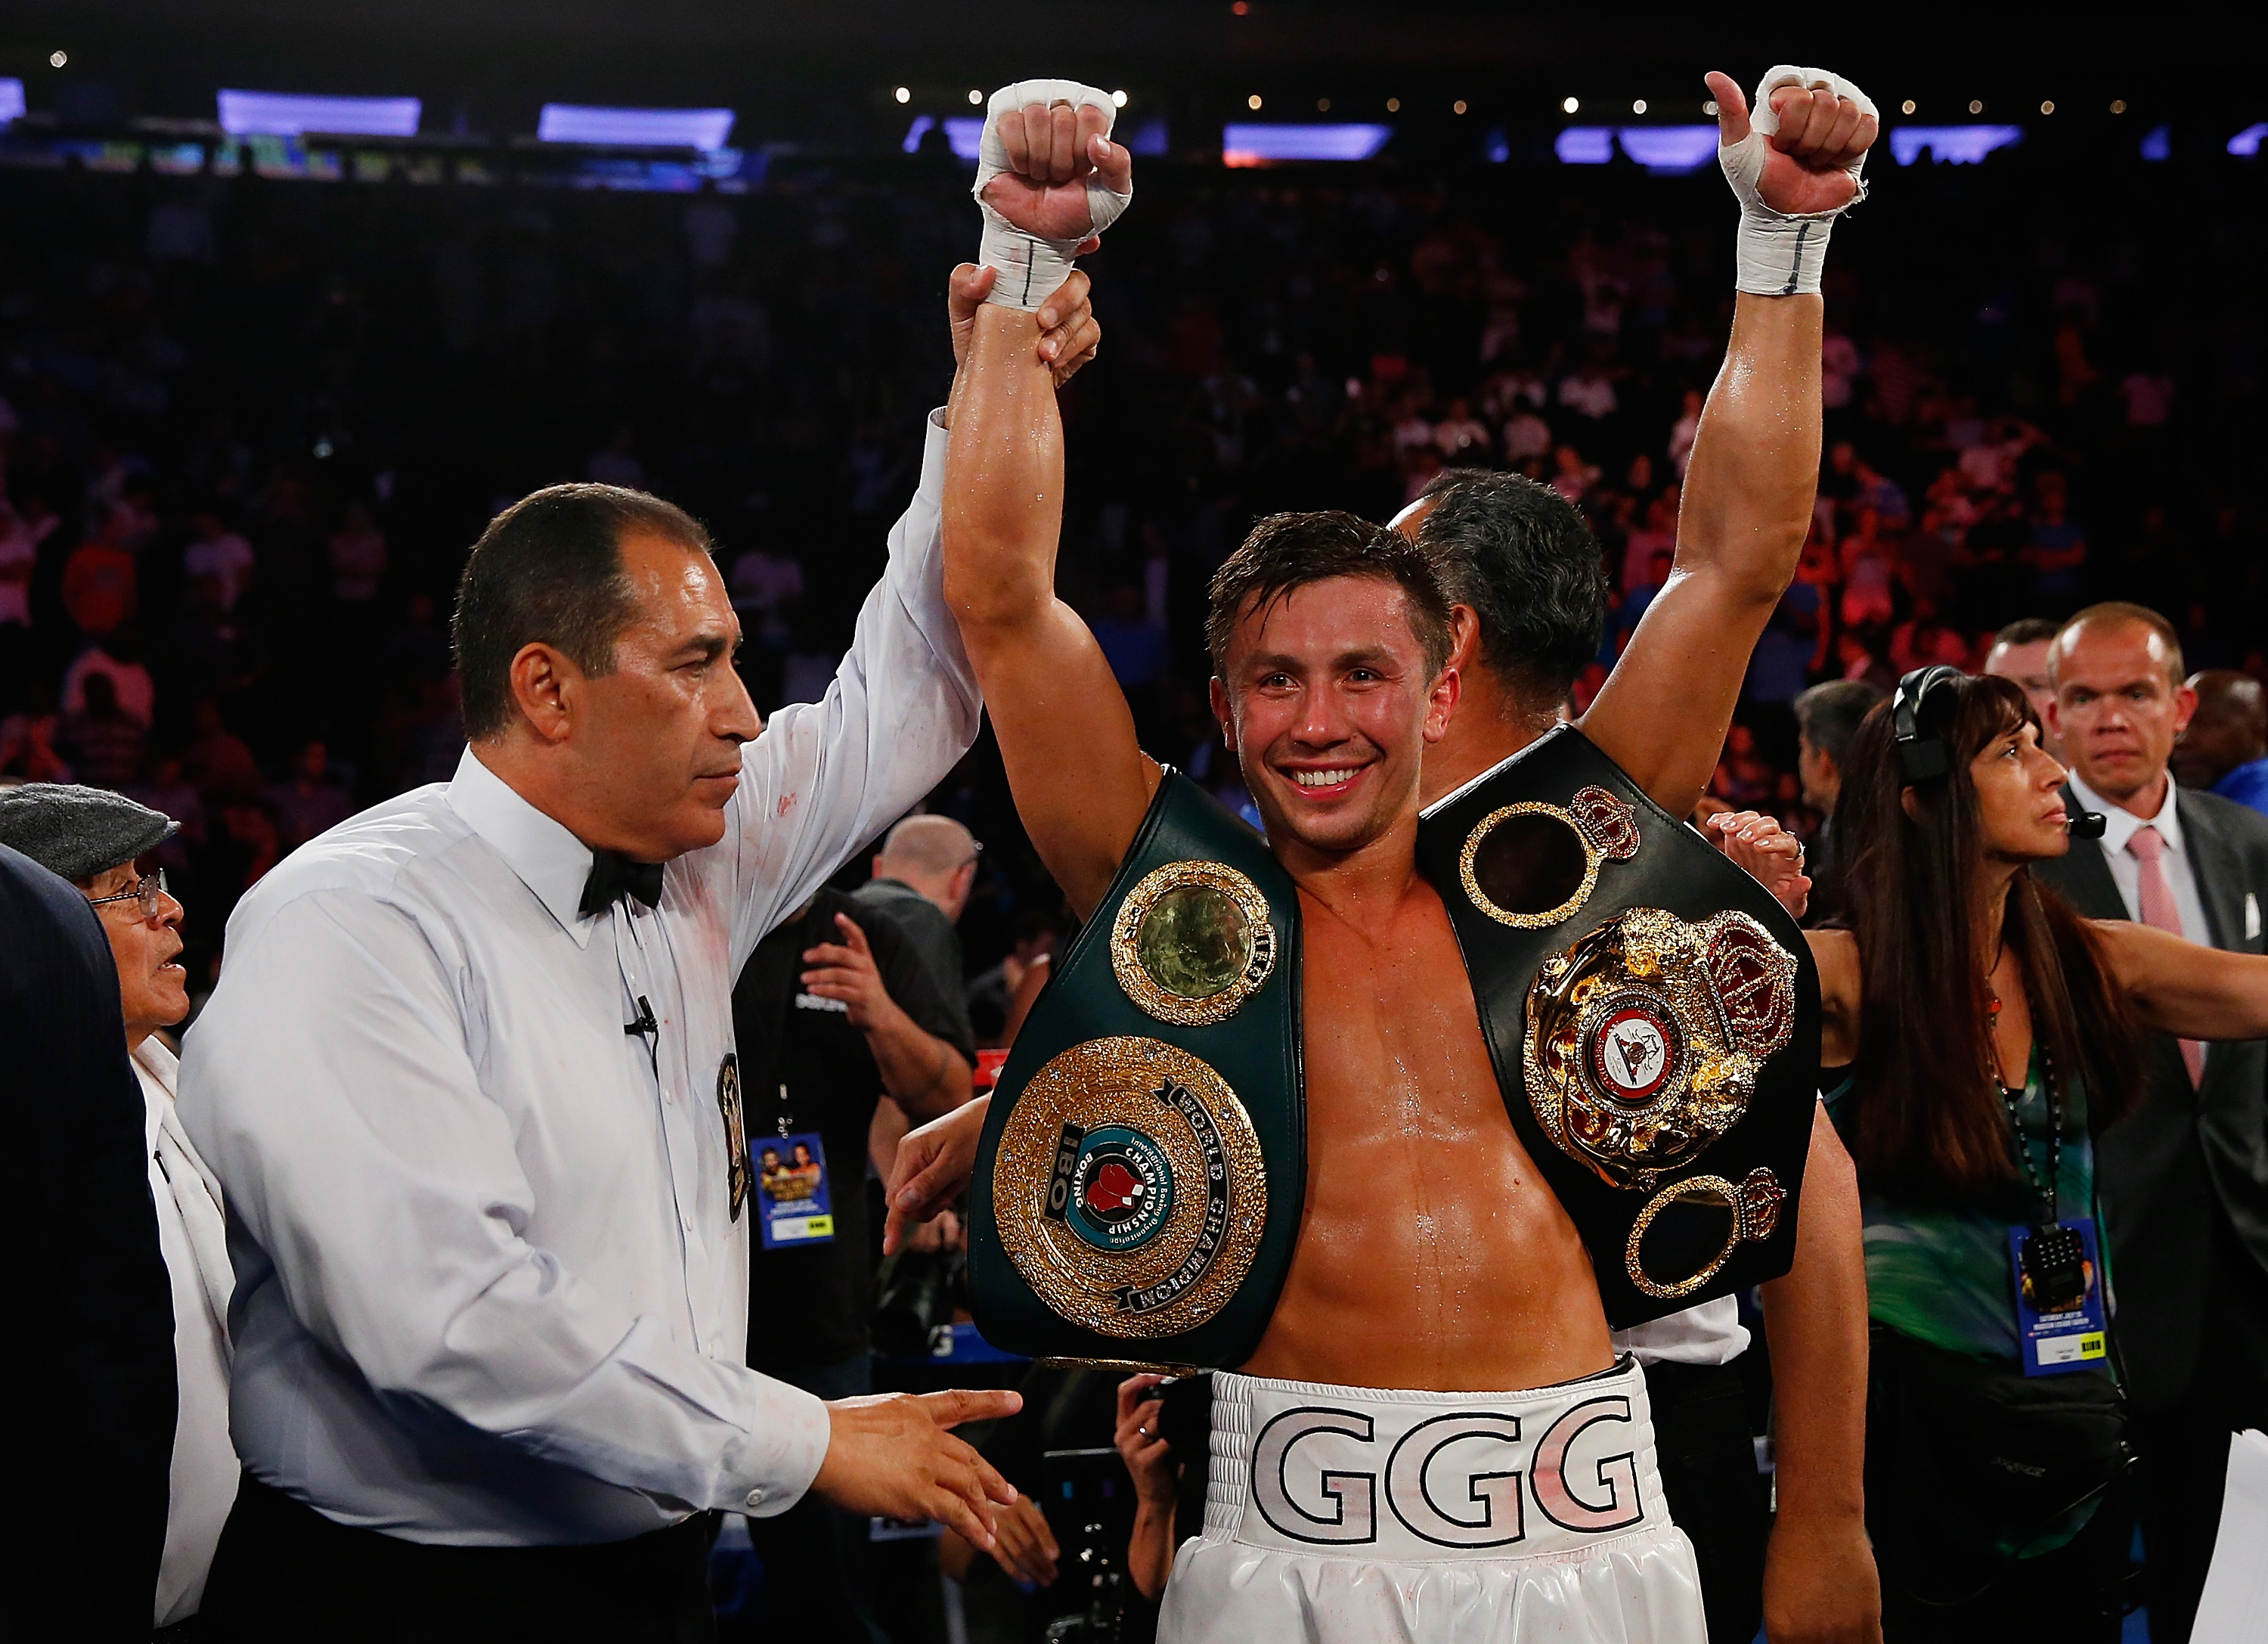 GGG celebrates after knocking out Daniel Geale in the third round to win the WBA/IBO middleweight championship at Madison Square Garden on July 26, 2014. (Getty)